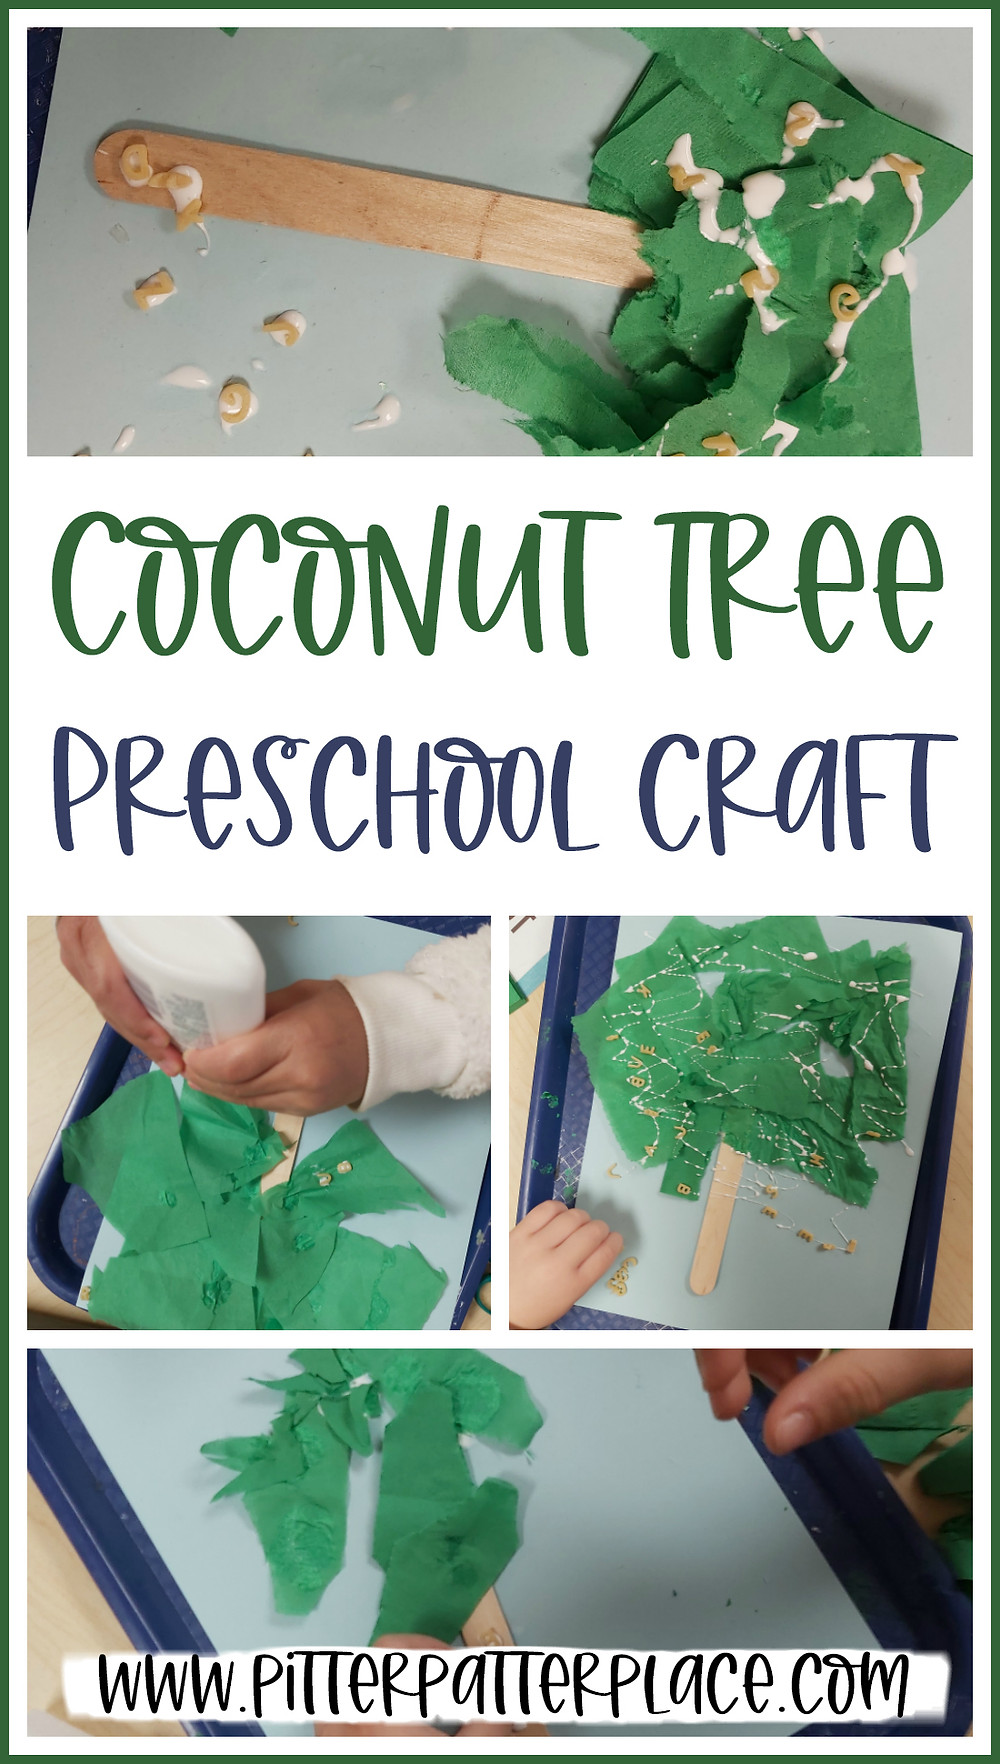 collage of coconut tree crafts with text: Coconut Tree Preschool Craft